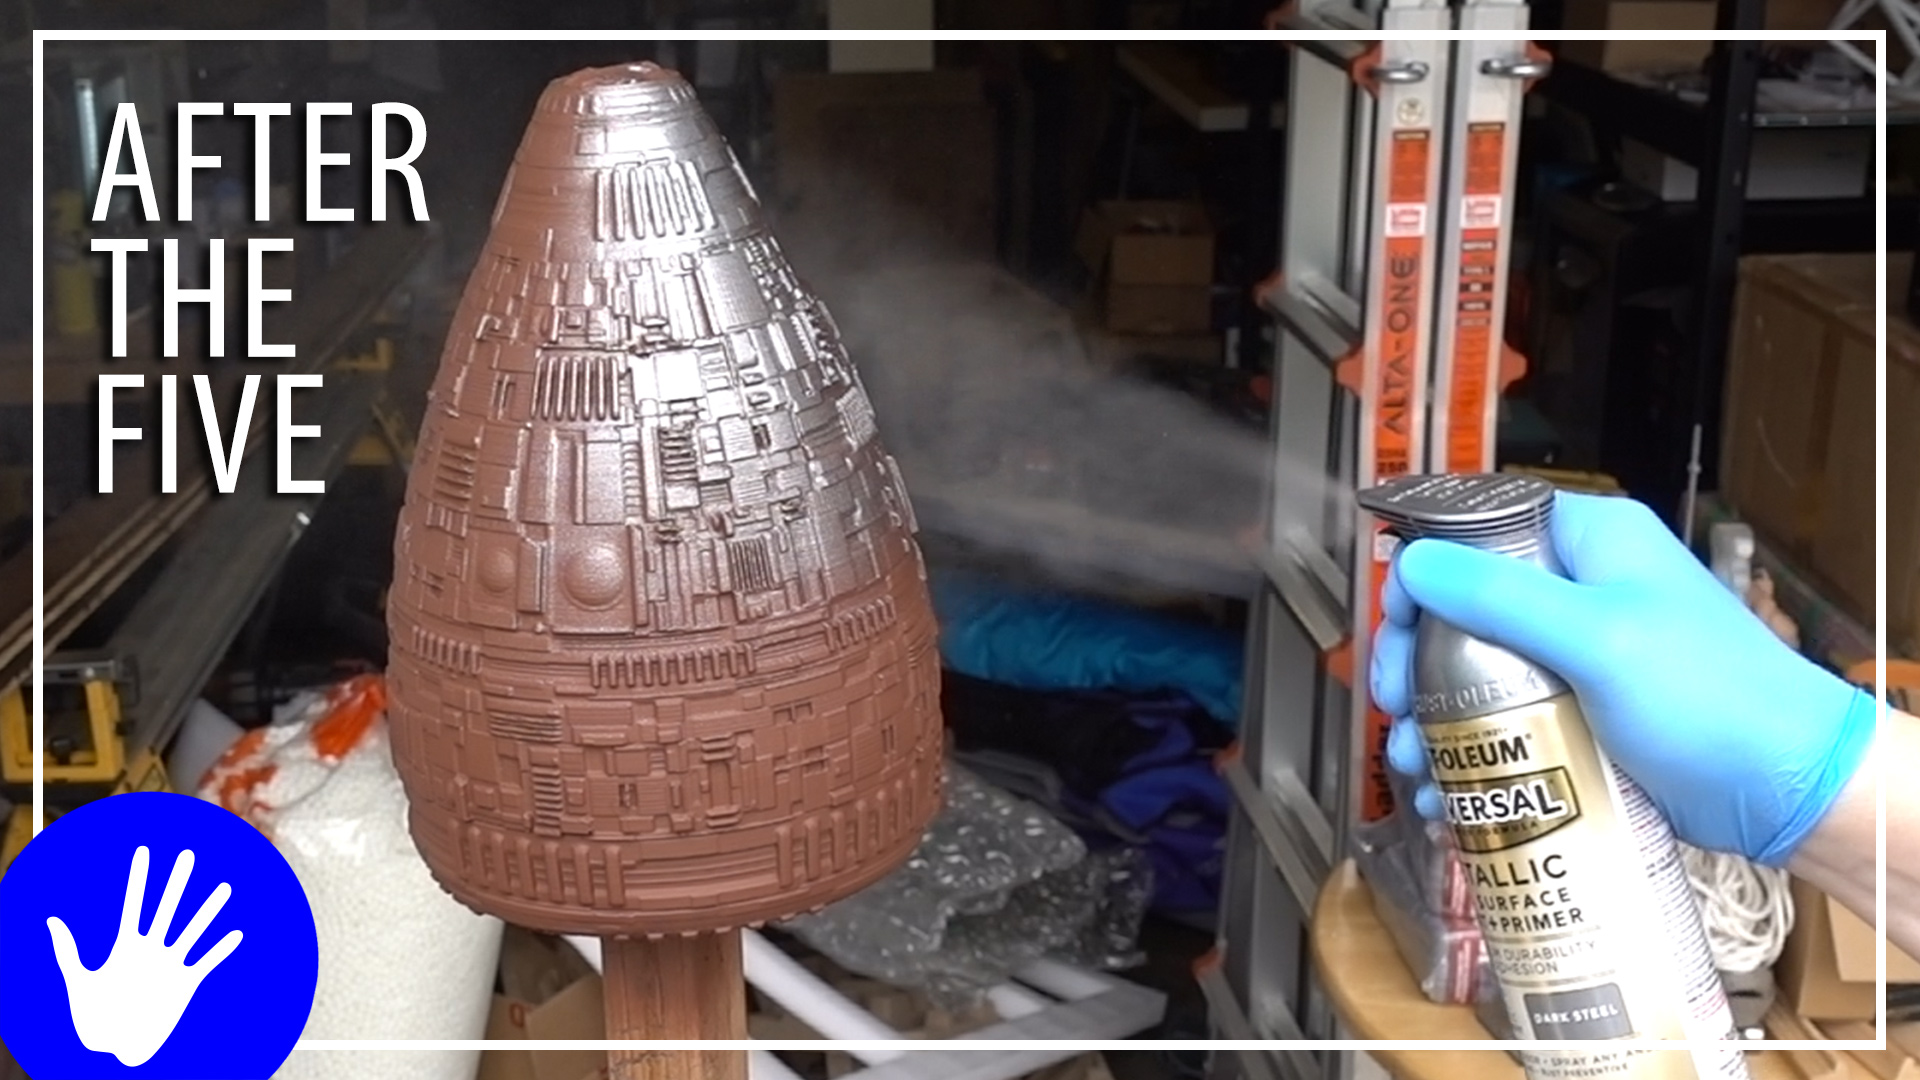 After The Five – SciFi Lamp Shade